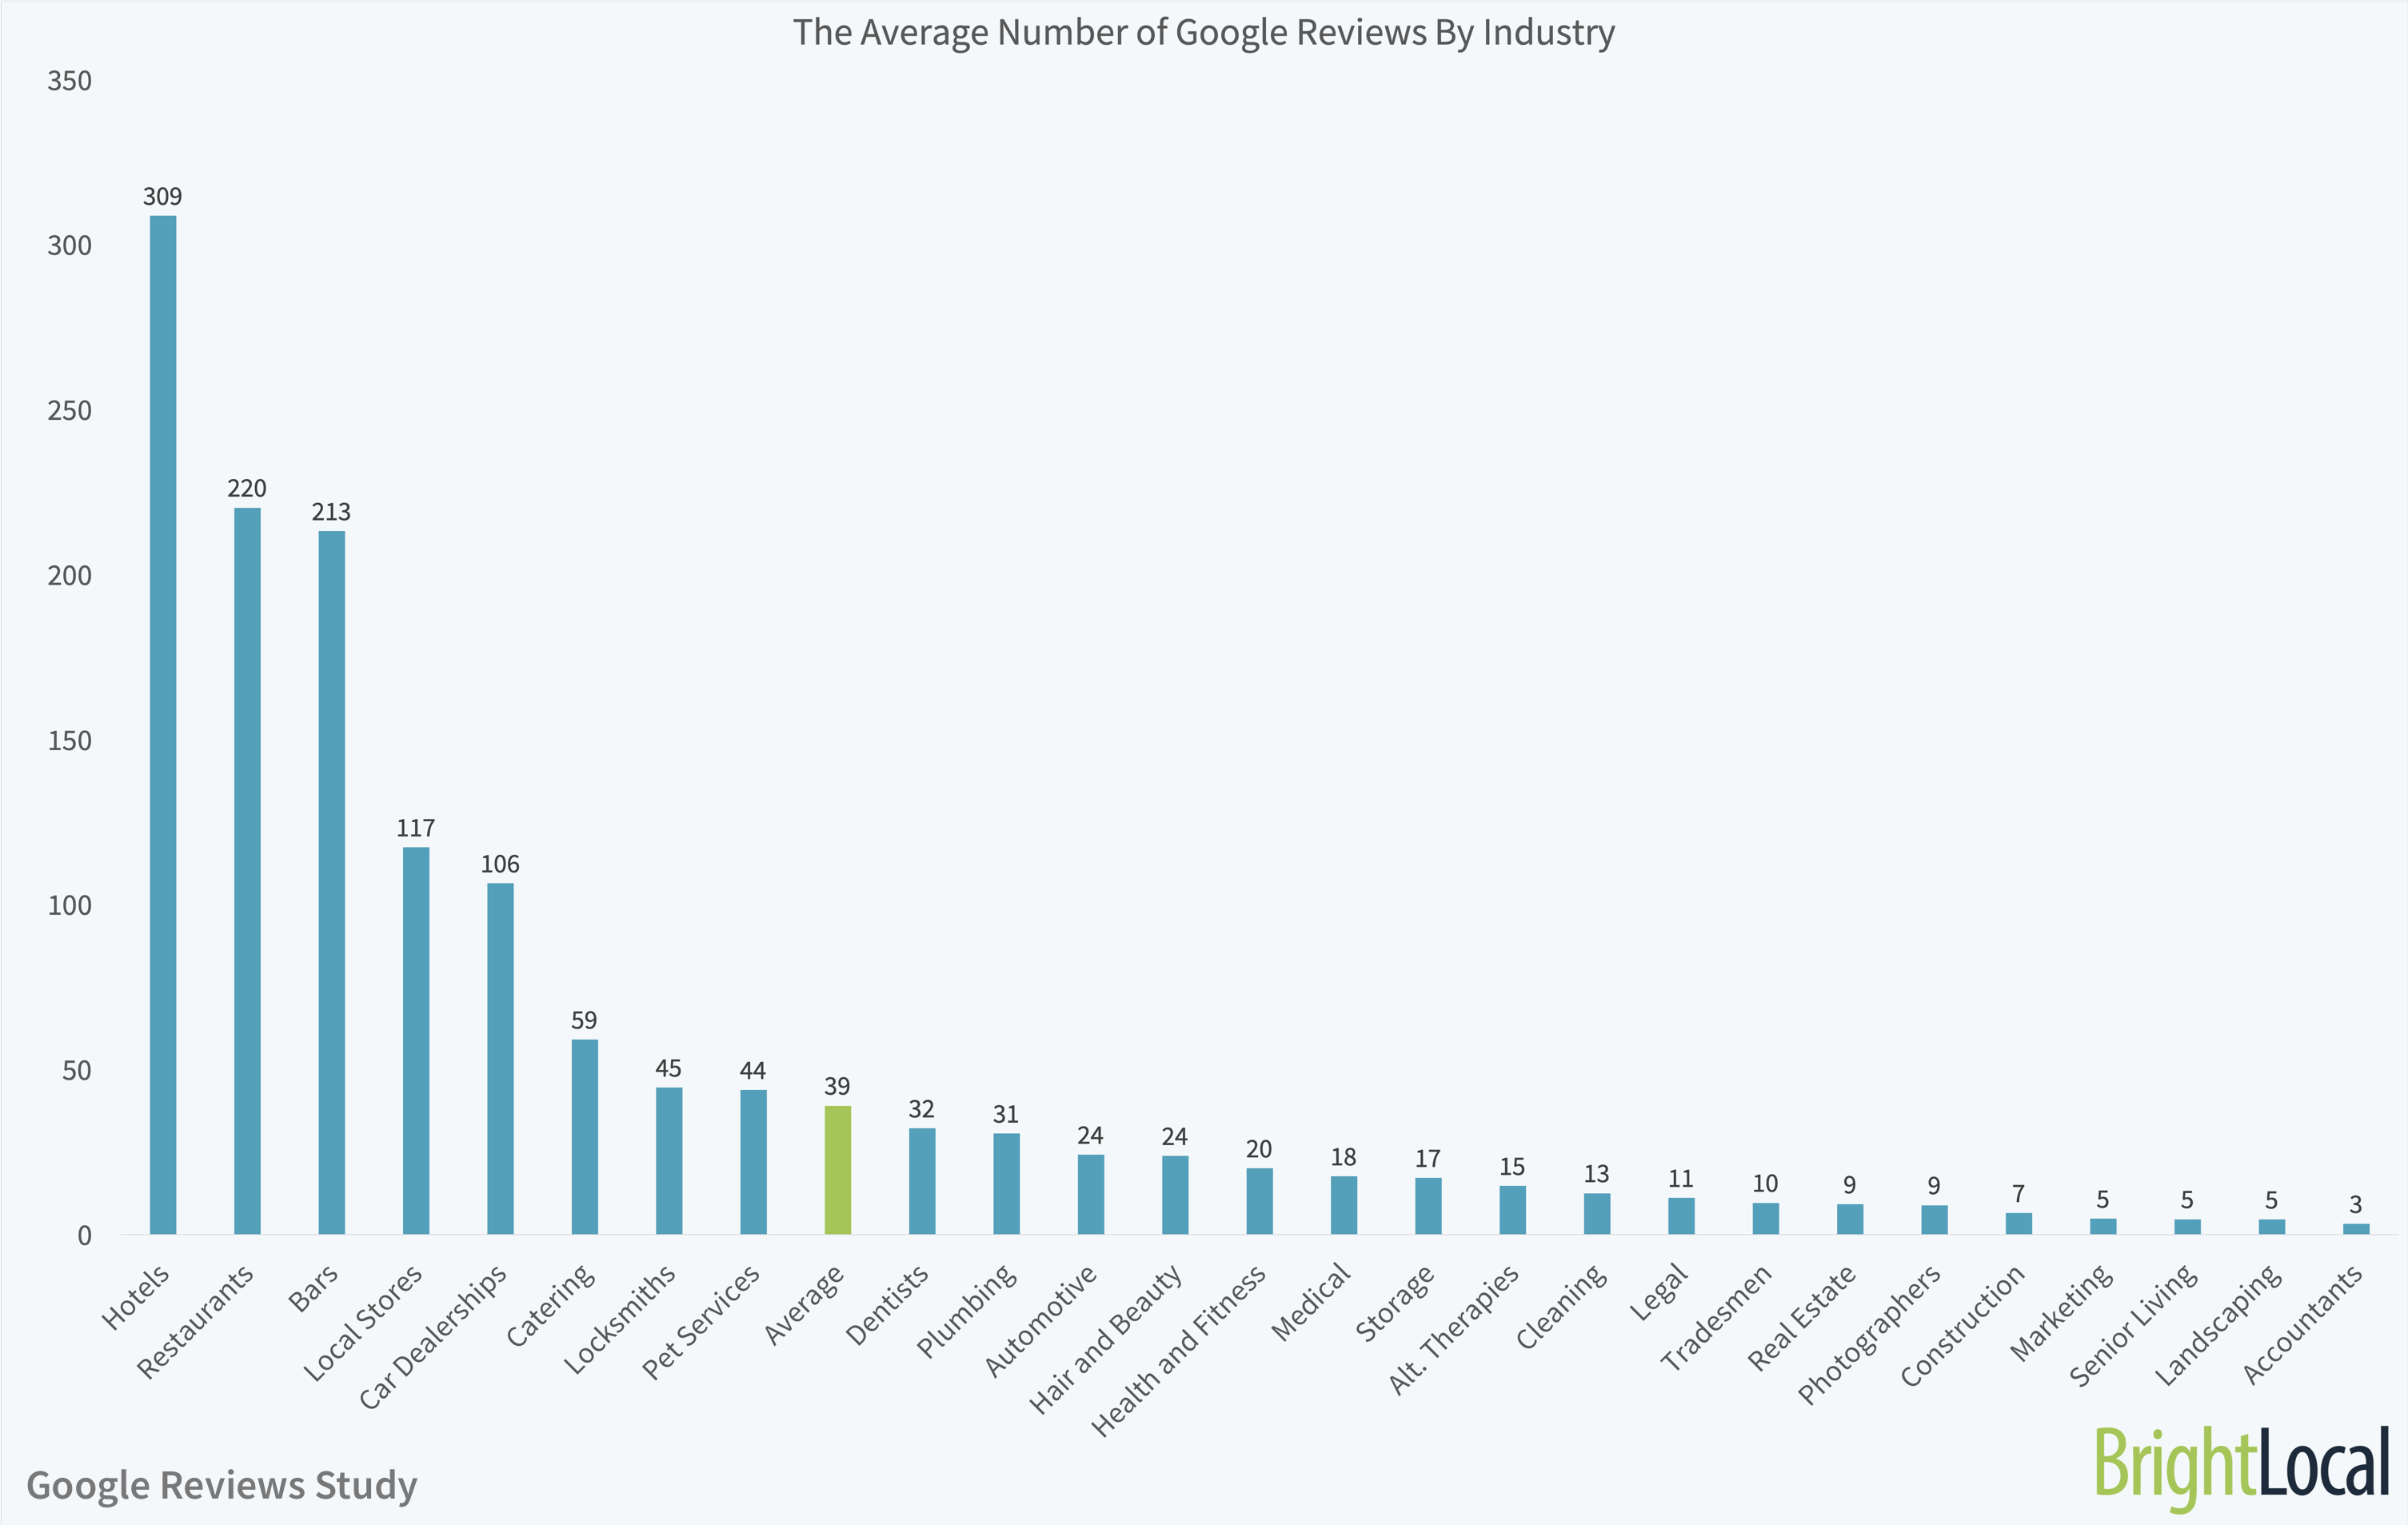 avg number of google reviews by industry